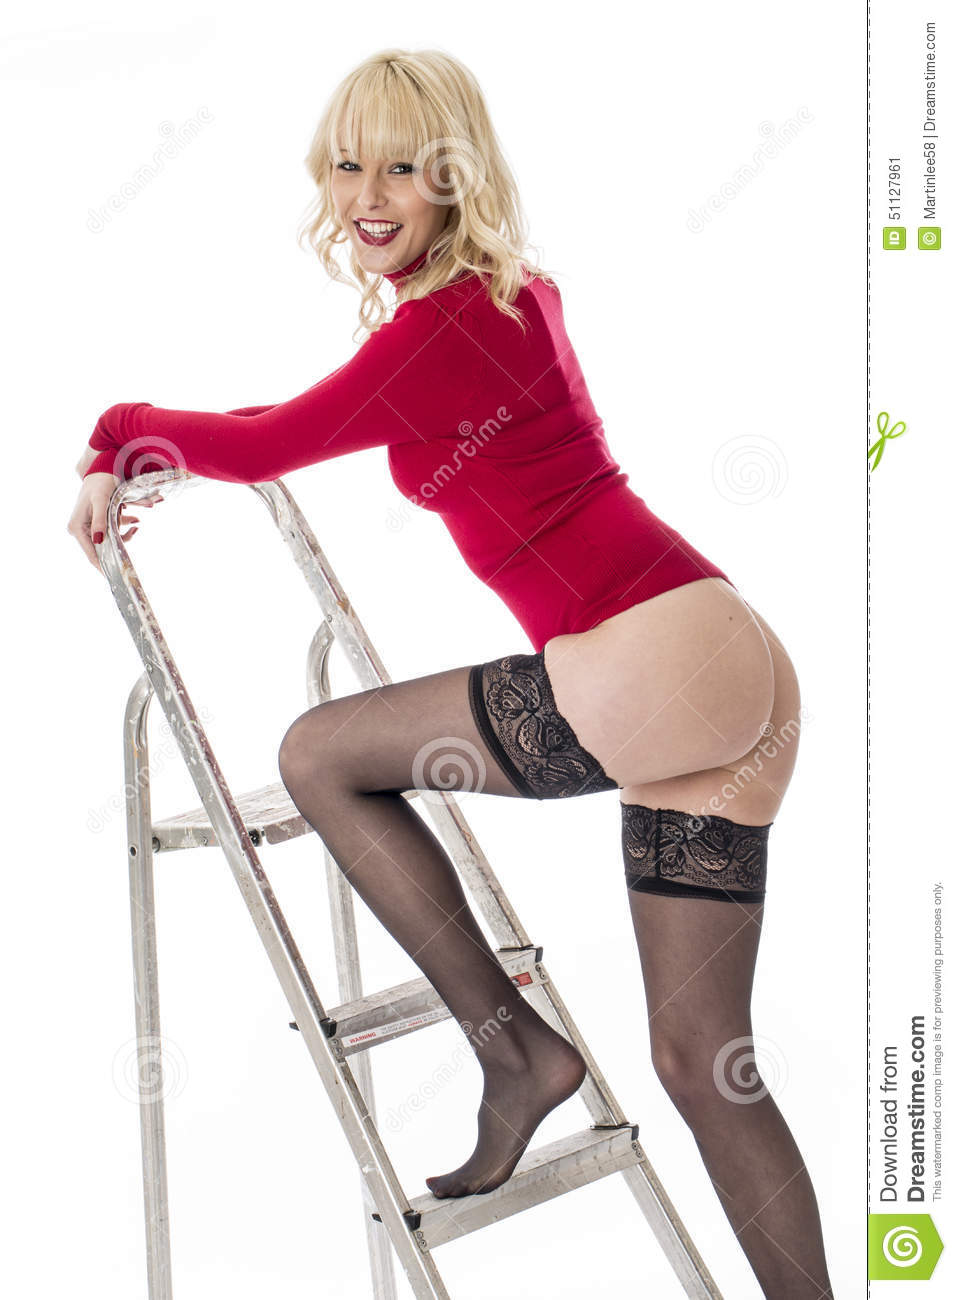 3a32137fab1 Young Model In Lingerie Climbing A Ladder Stock Image - Image of ...